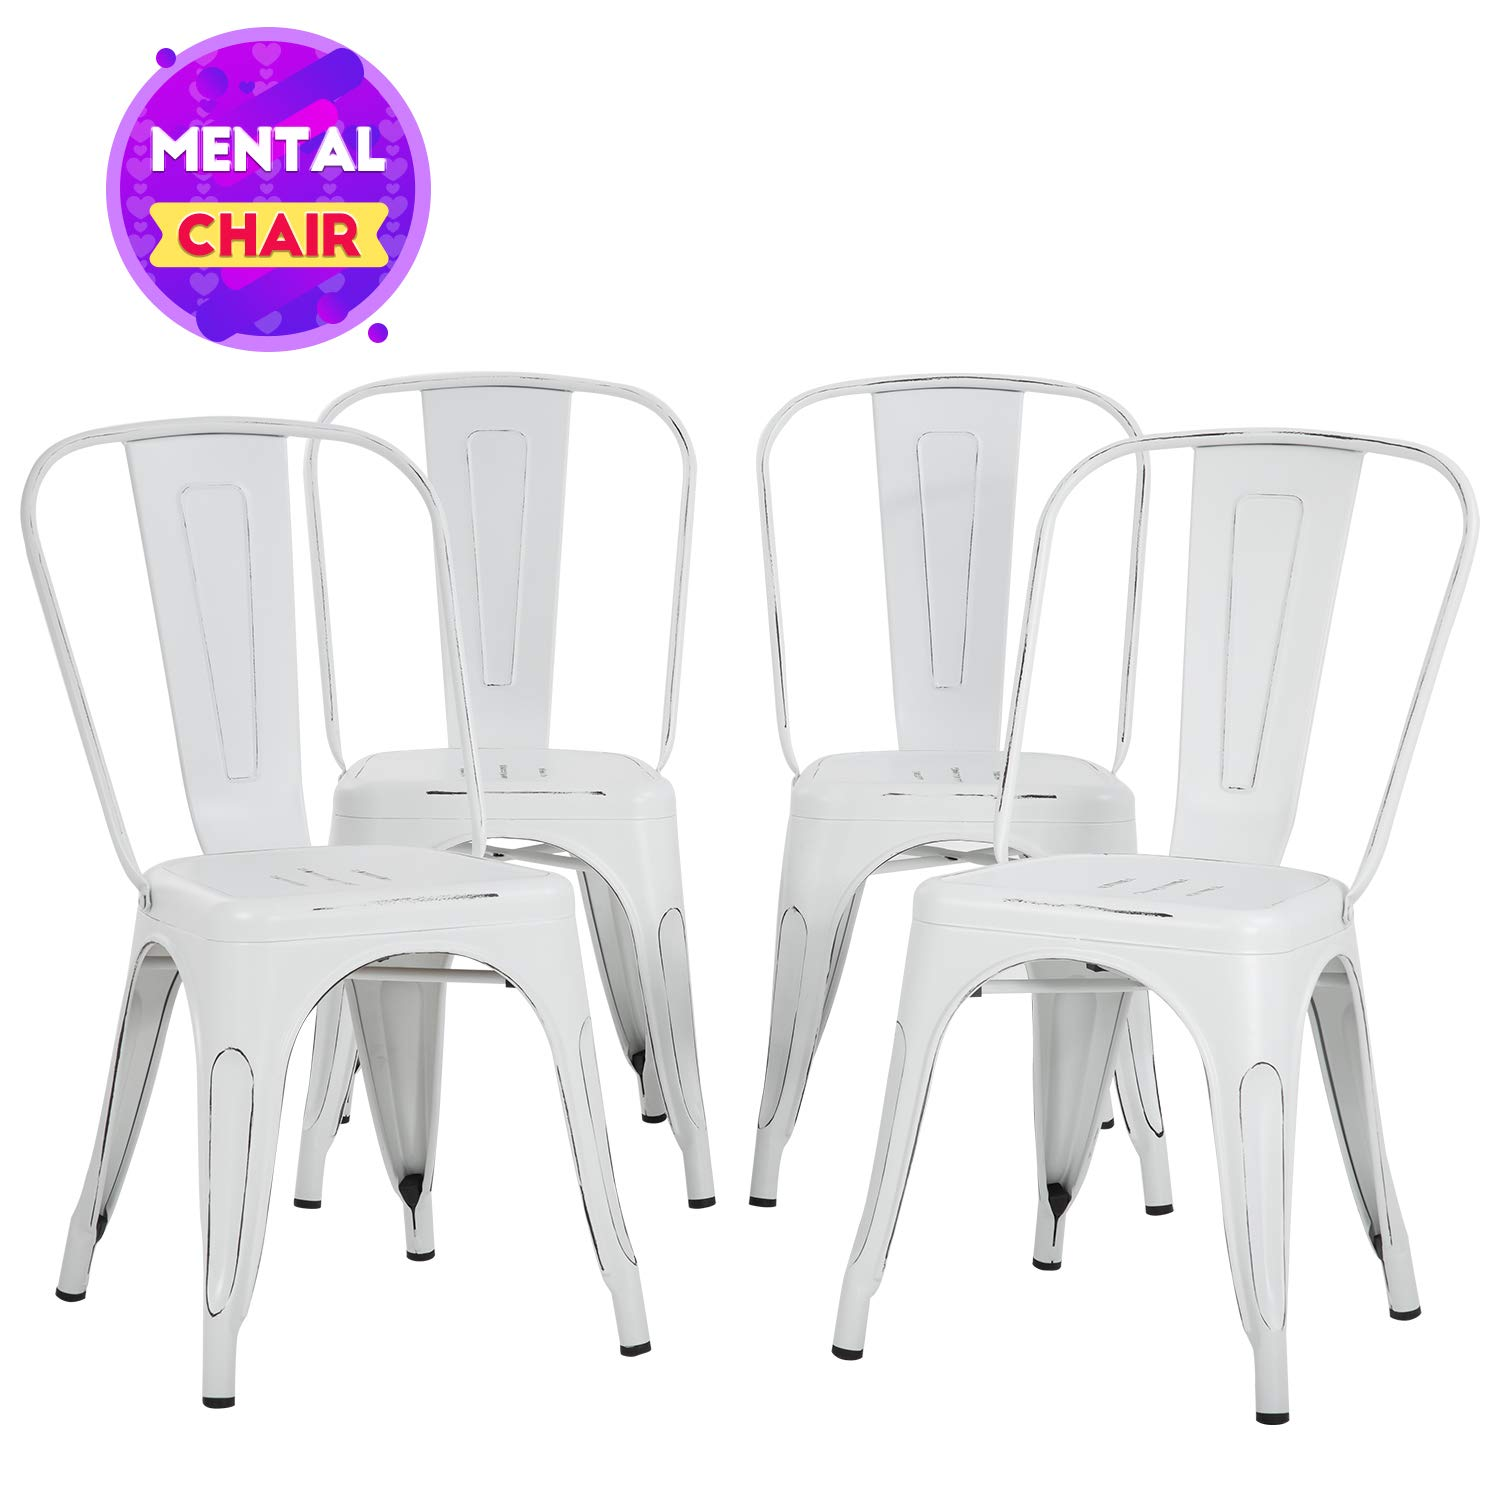 FDW Metal Dining Chairs Set of 4 Indoor Outdoor Chairs Patio Chairs Metal Chairs 18 Inch Seat Height Metal Restaurant Chair Kitchen Chairs 330LBS Weight Capacity Stackable Chair Tolix Side Bar Chairs